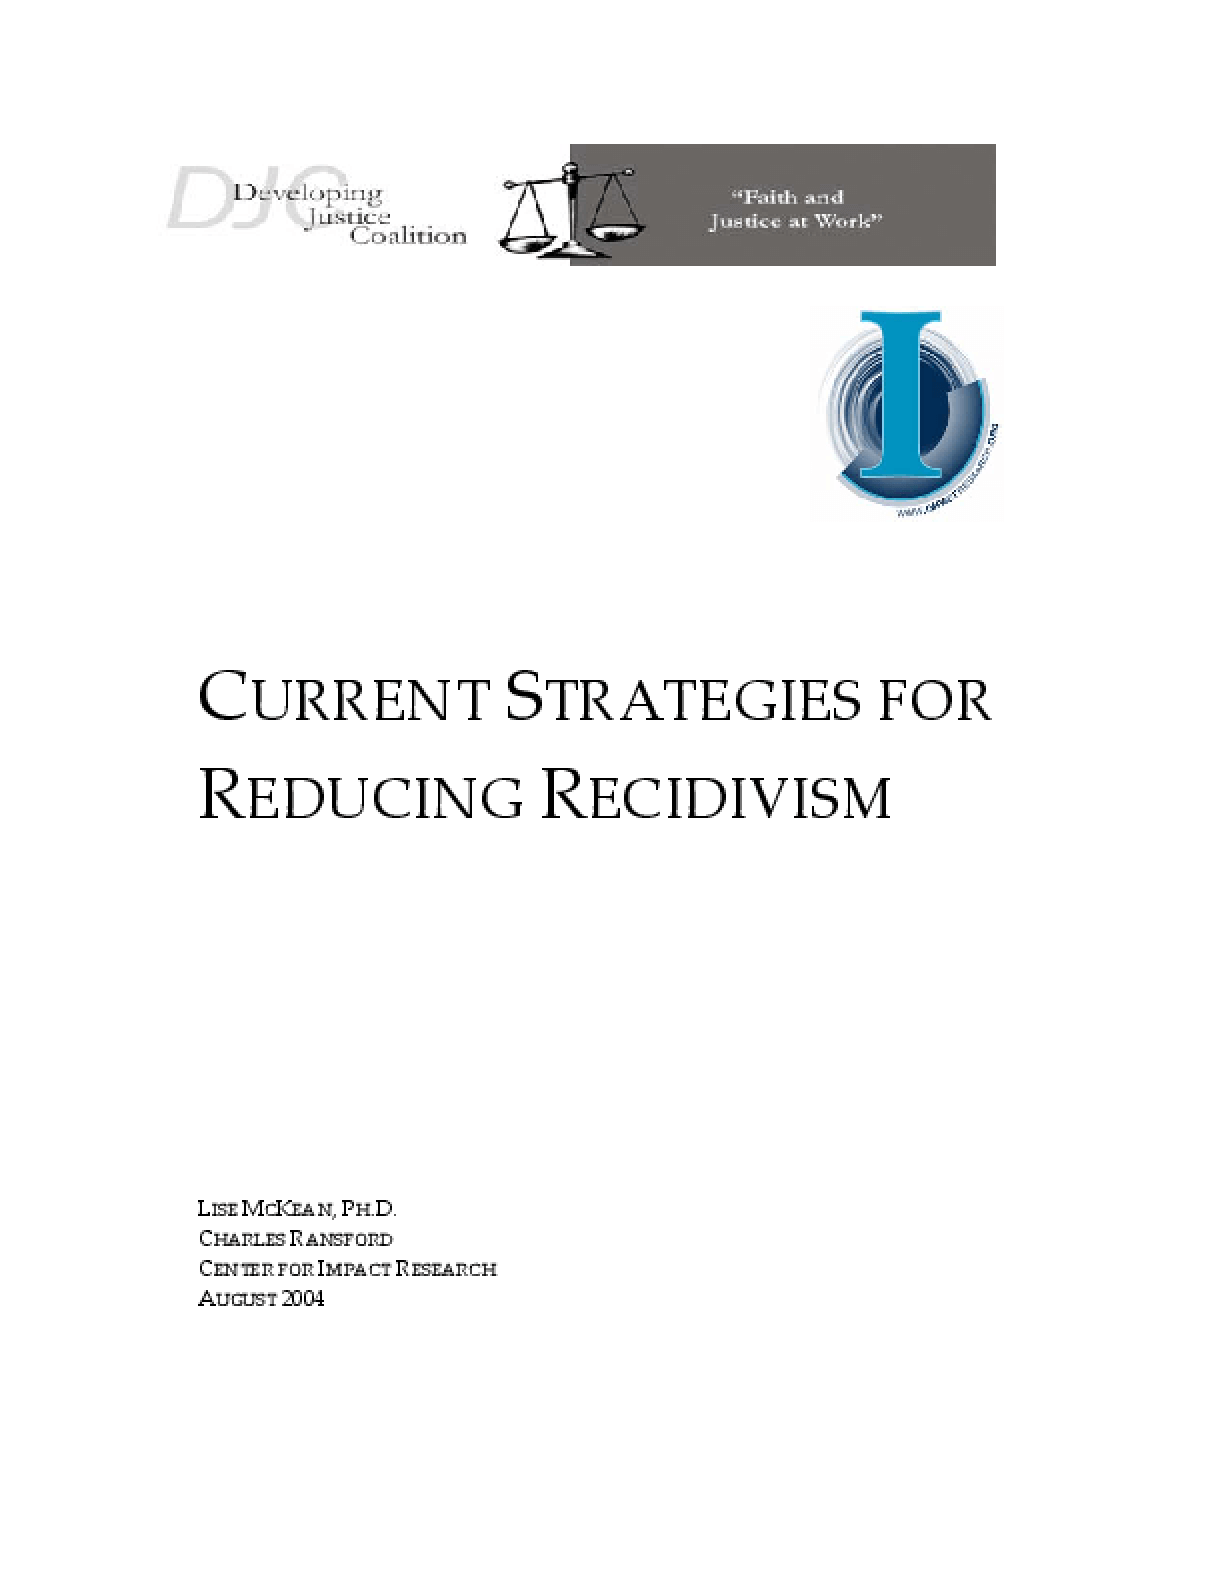 Current Strategies for Reducing Recidivism